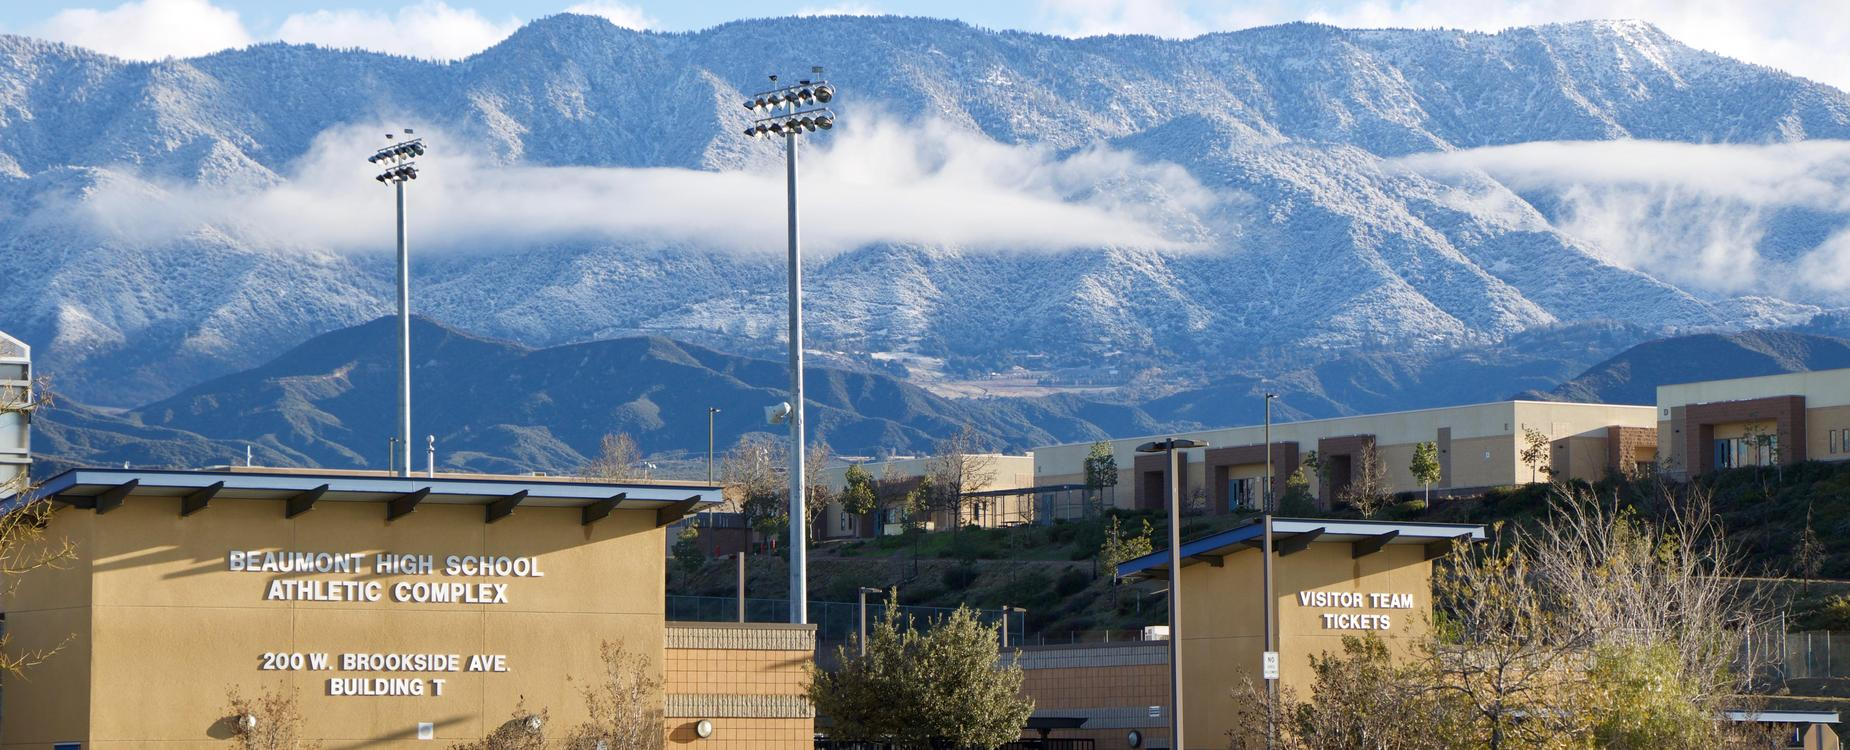 High School Athletic complex with mountains in background